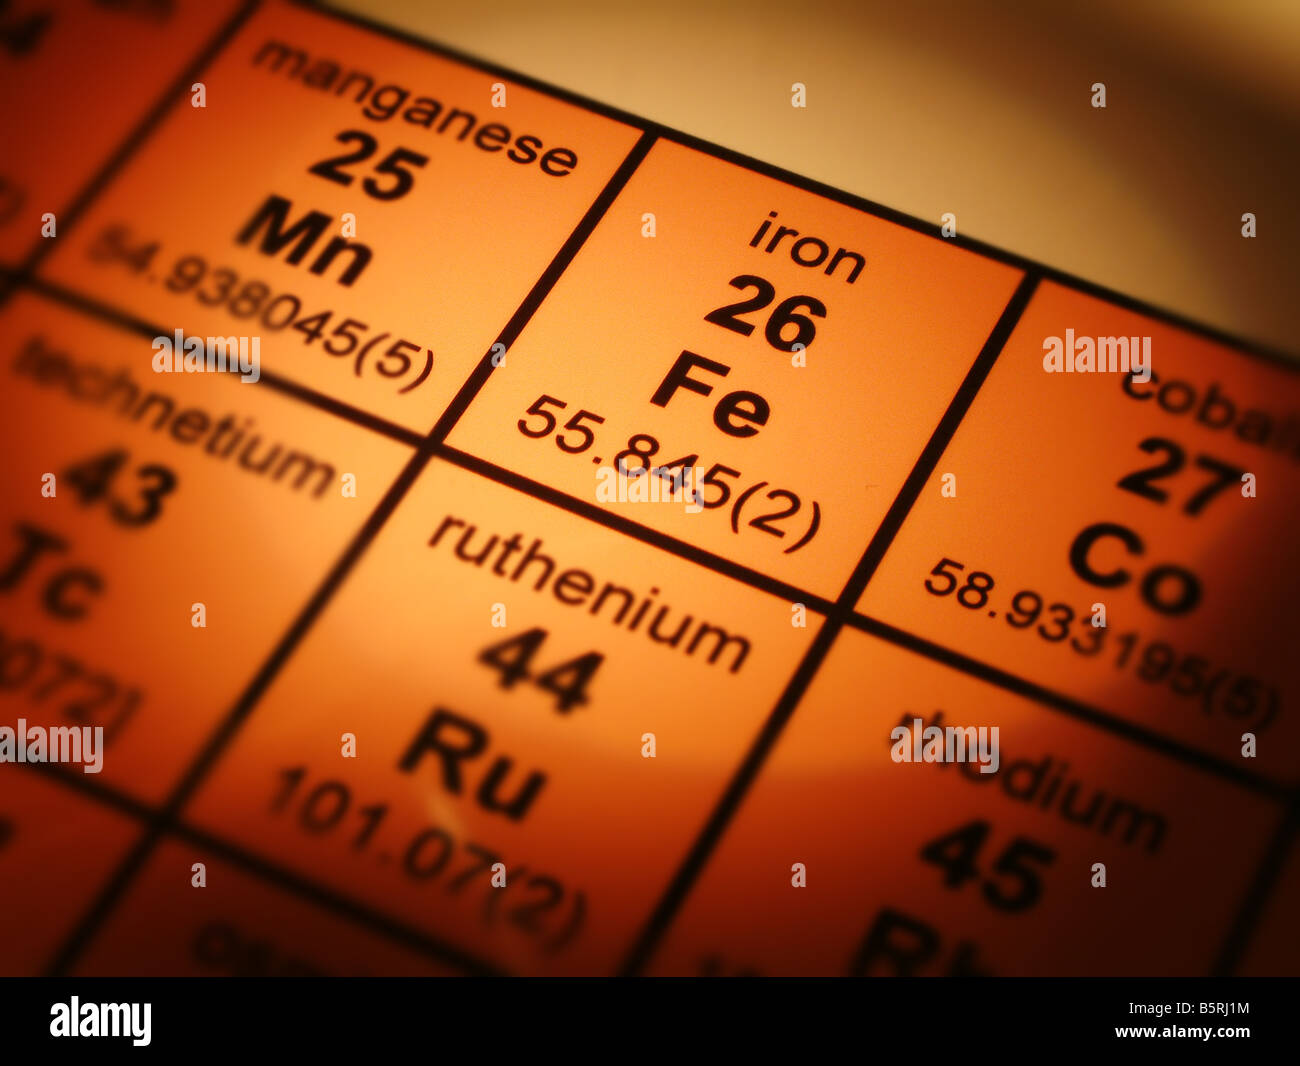 Periodic table of elements iron stock photo royalty free image 20802704 alamy - Iron on the periodic table ...